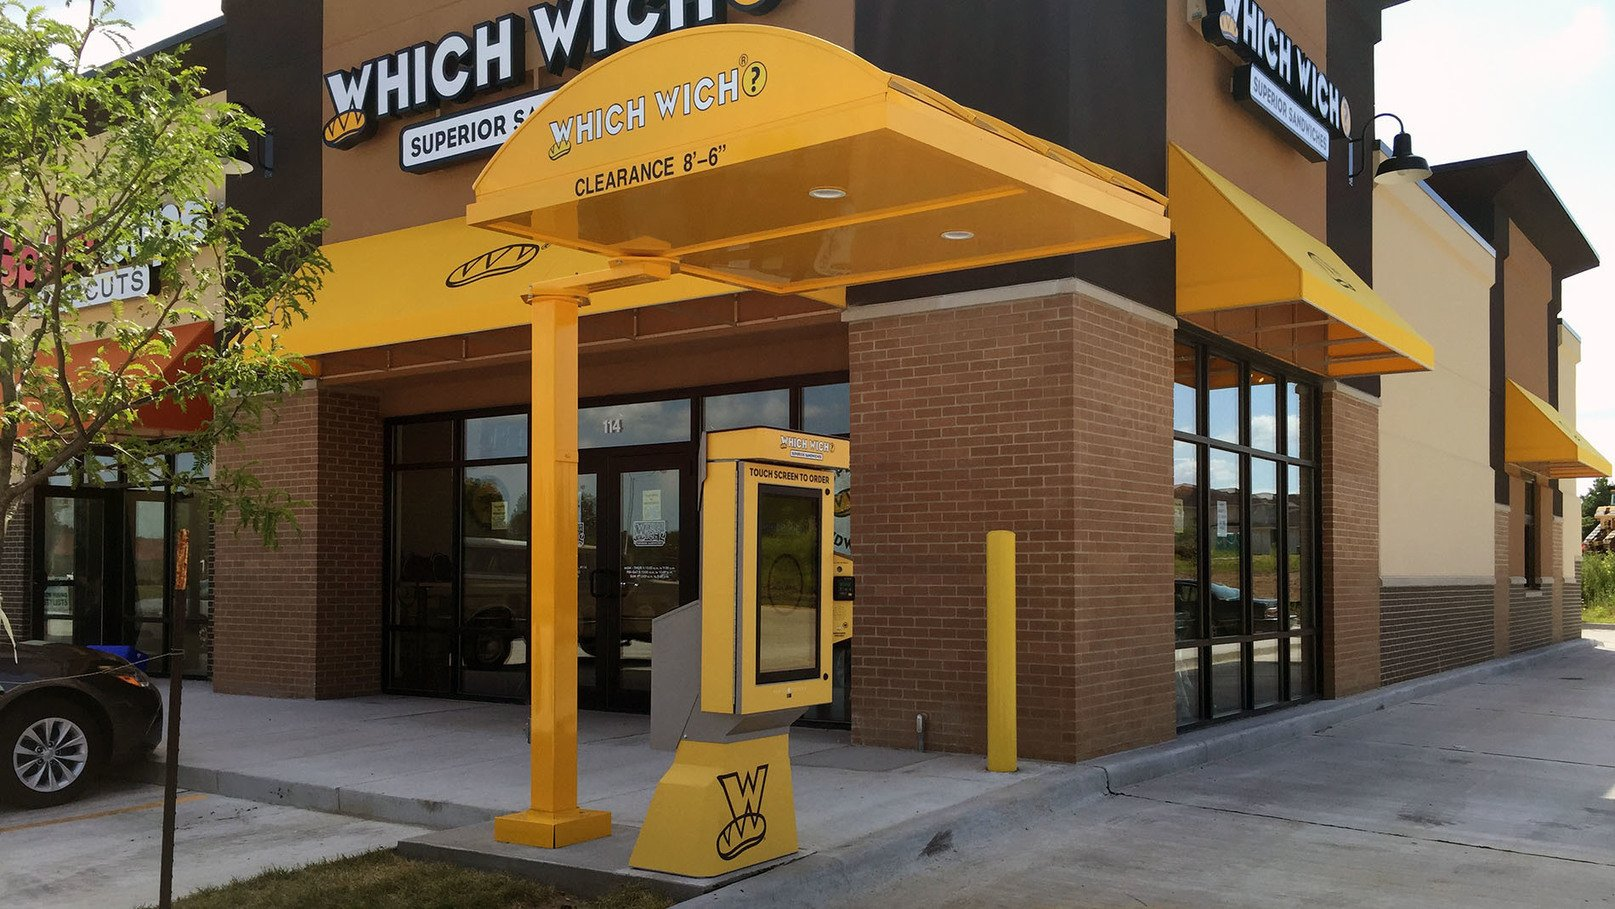 Which Wich Order Kiosk